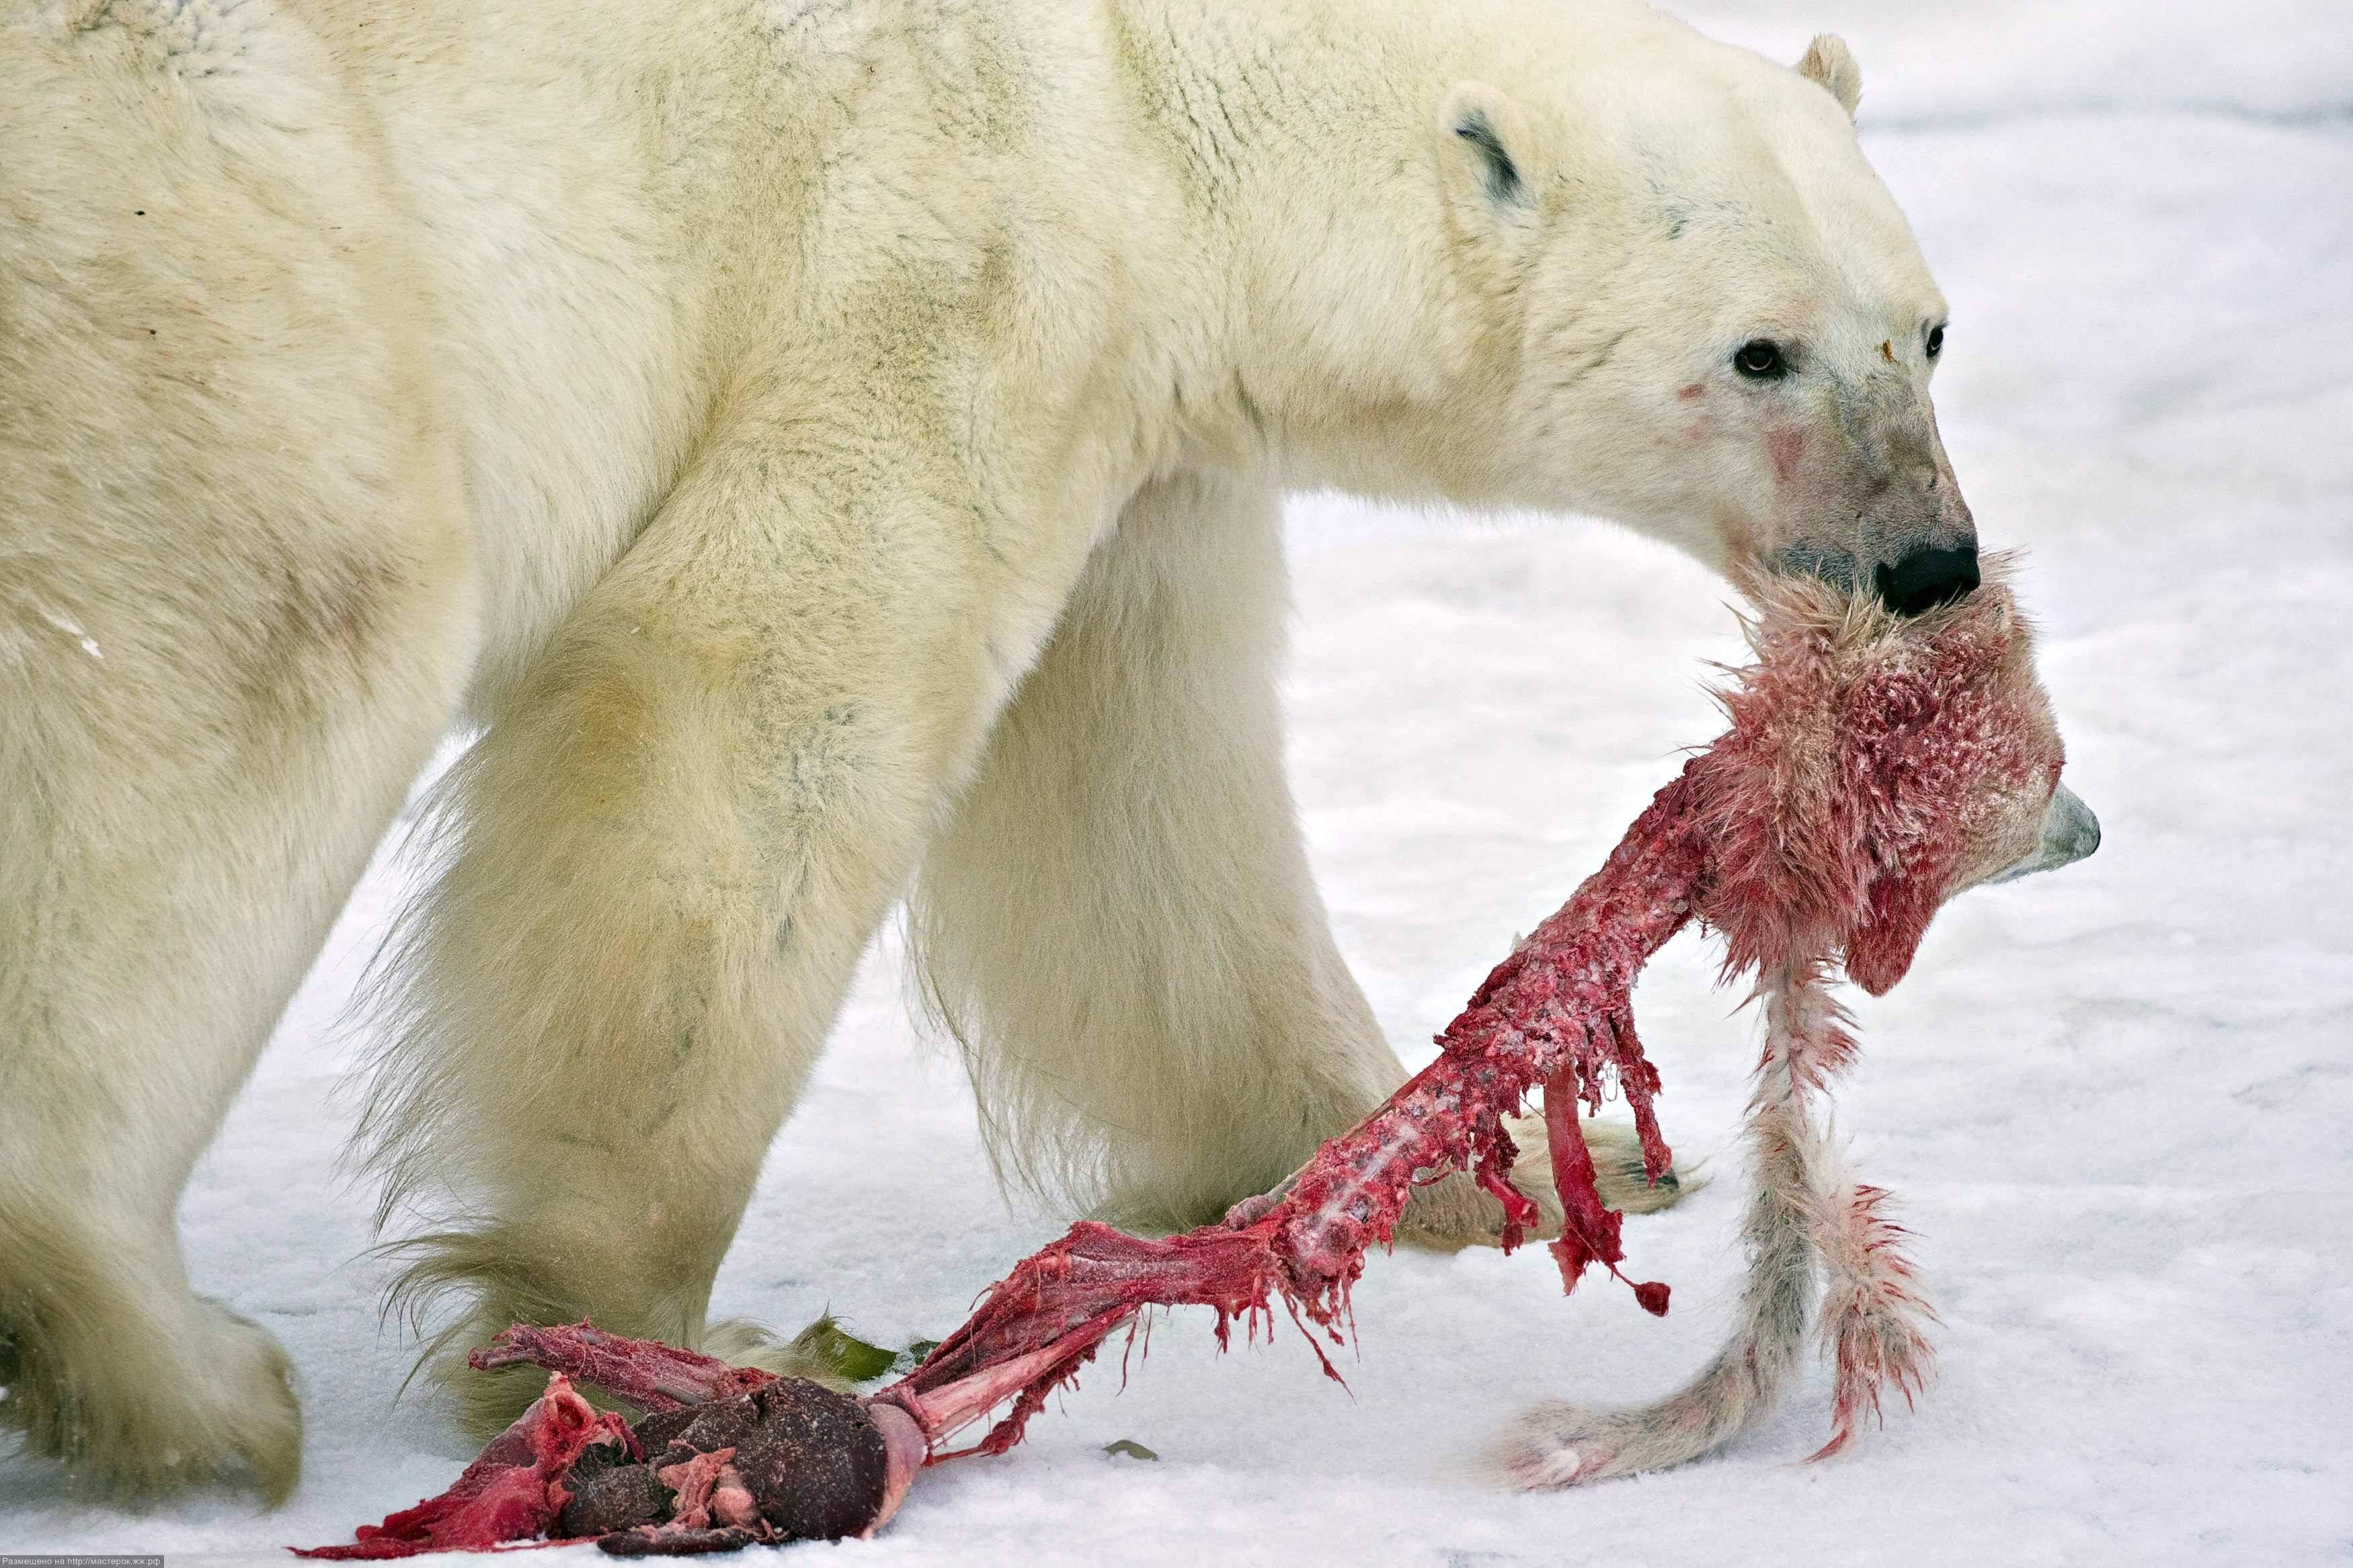 A male polar bear drags the remains of a polar bear cub it killed and cannibalized in an area about 300km north of the Canadian town of Churchill